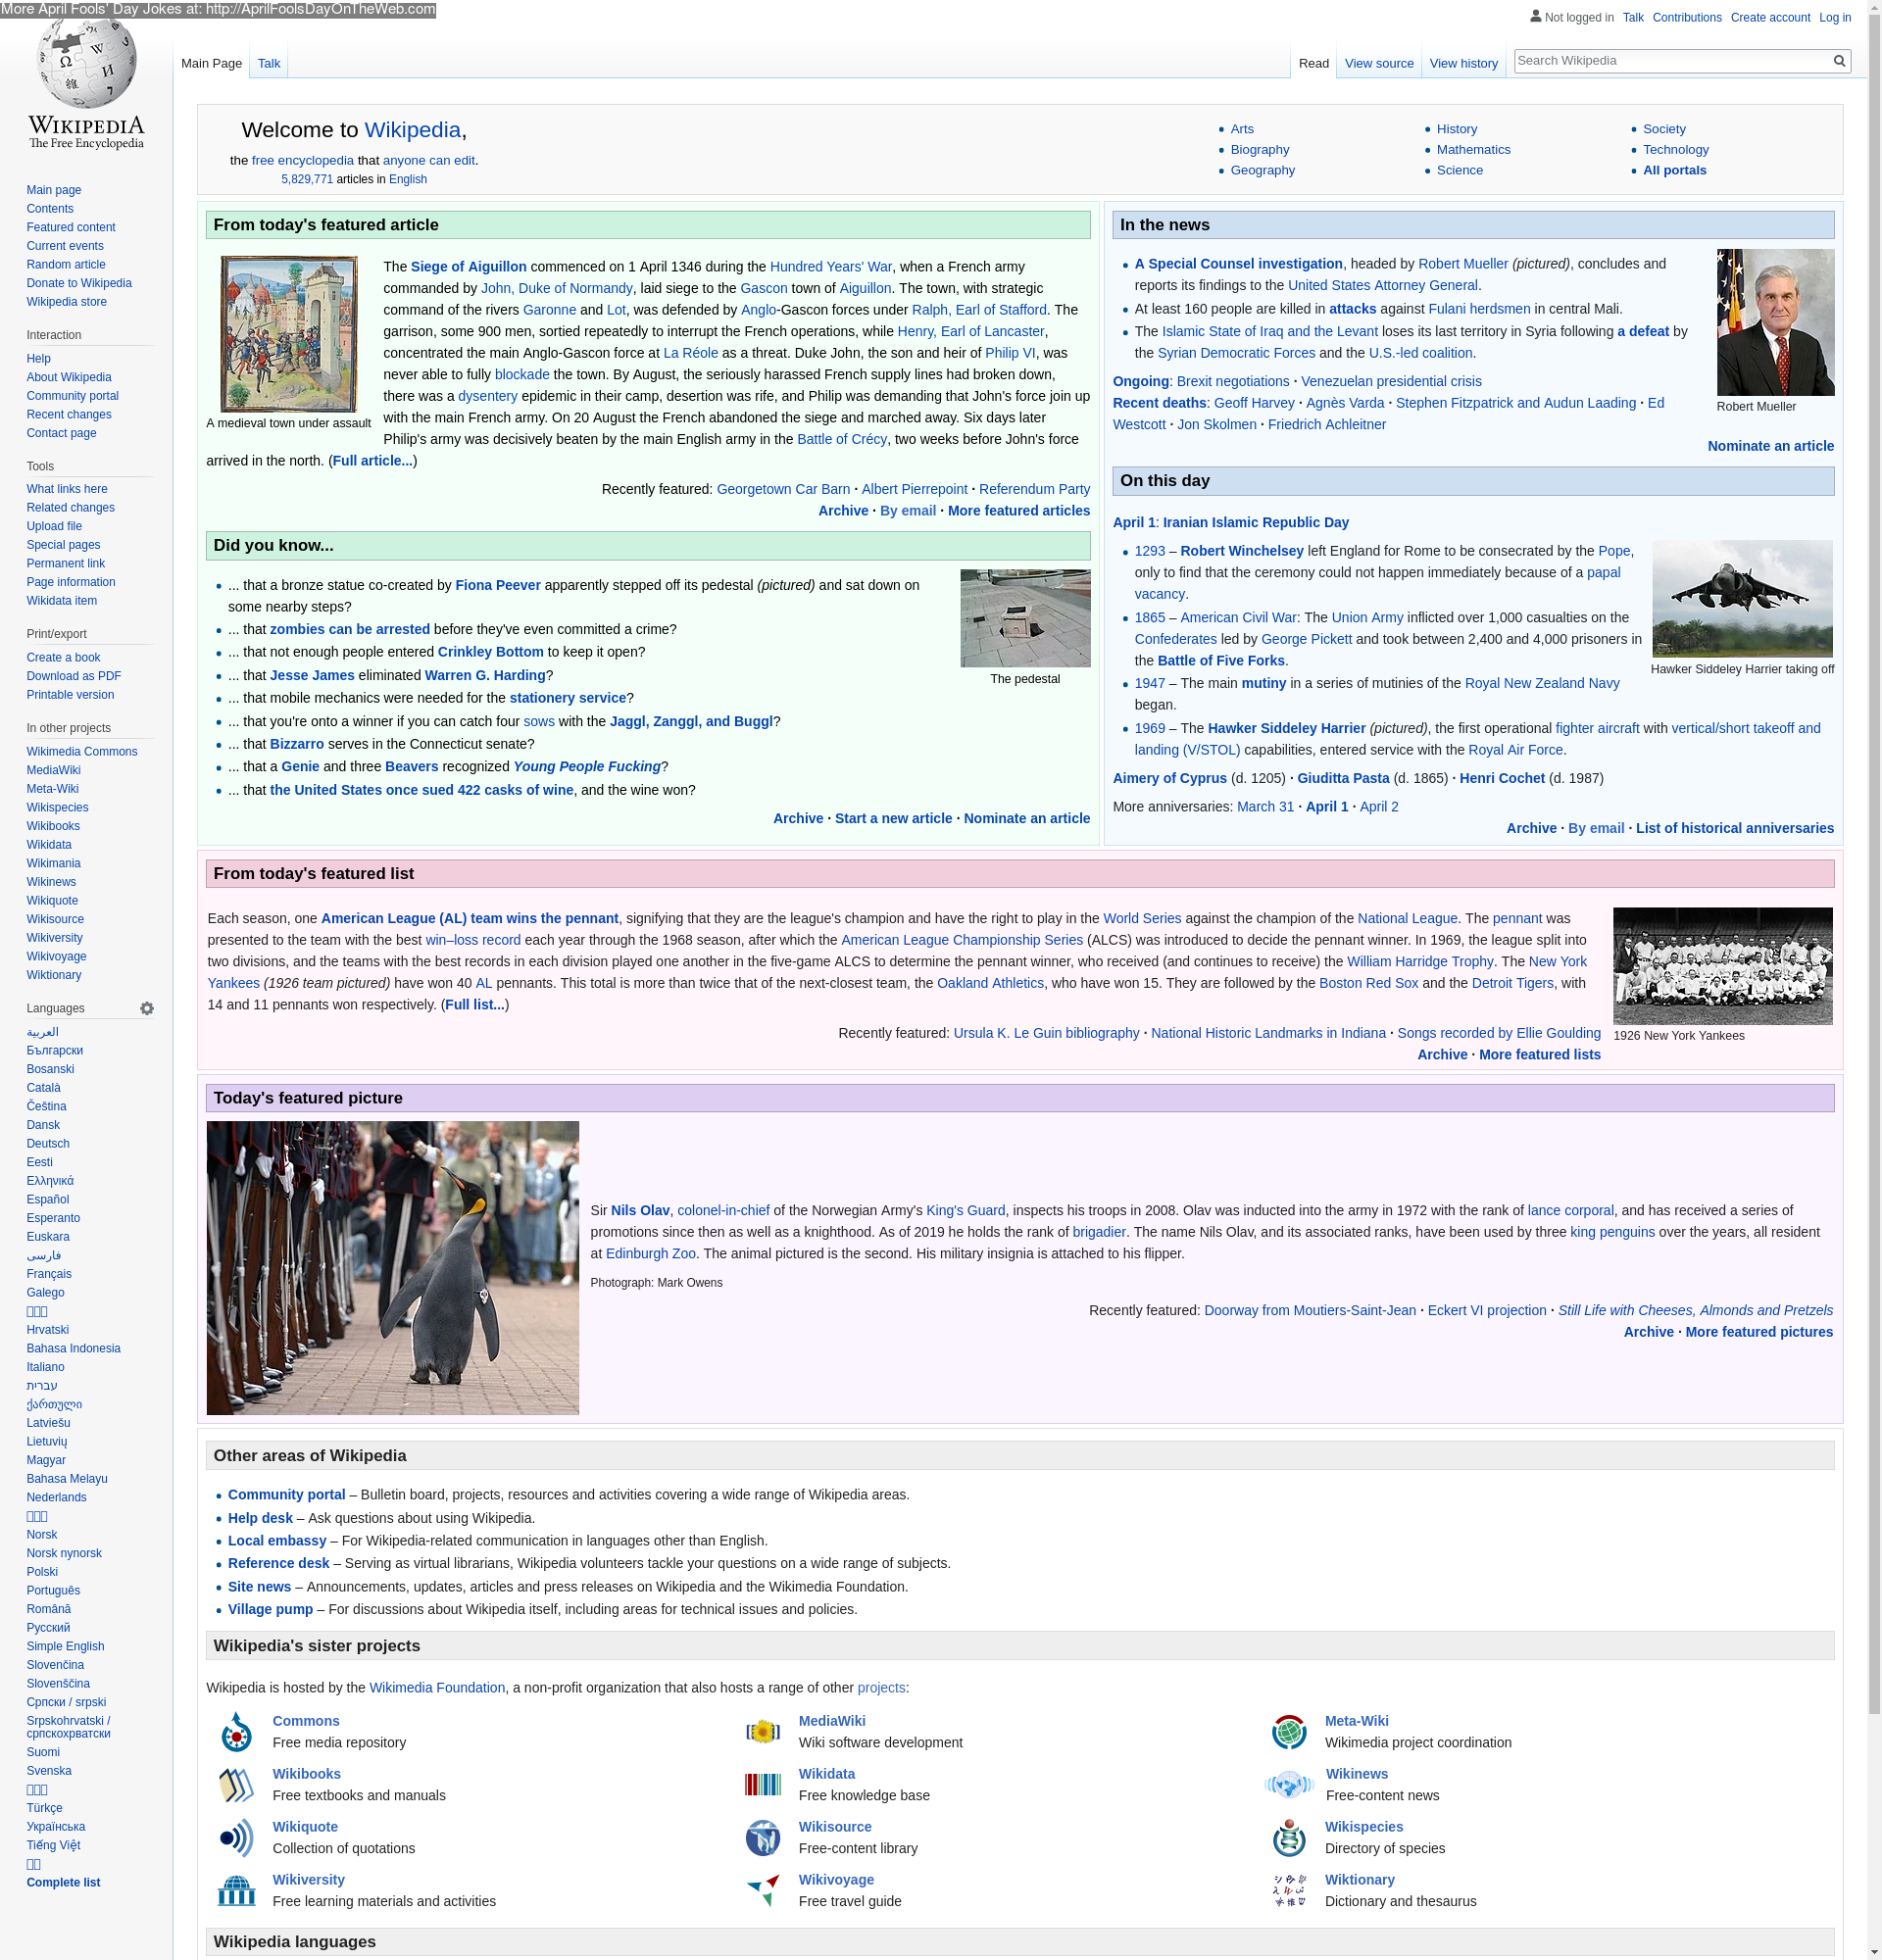 April Fools' Day On The Web (2019/20190174) (en wikipedia